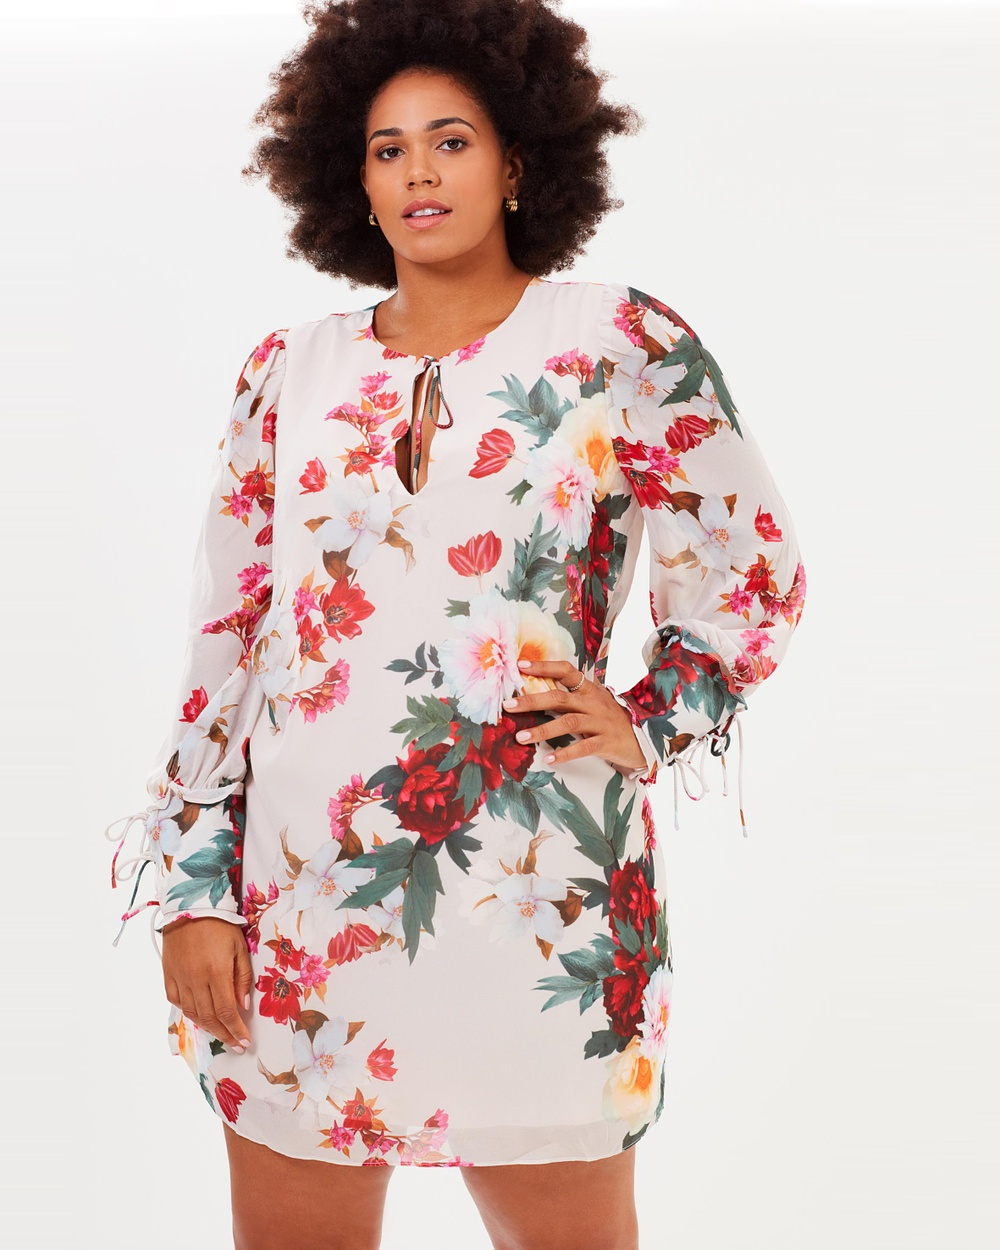 Cooper St CS CURVY Rosa Shift Dress Printed Dresses Print CS CURVY Rosa Shift Dress